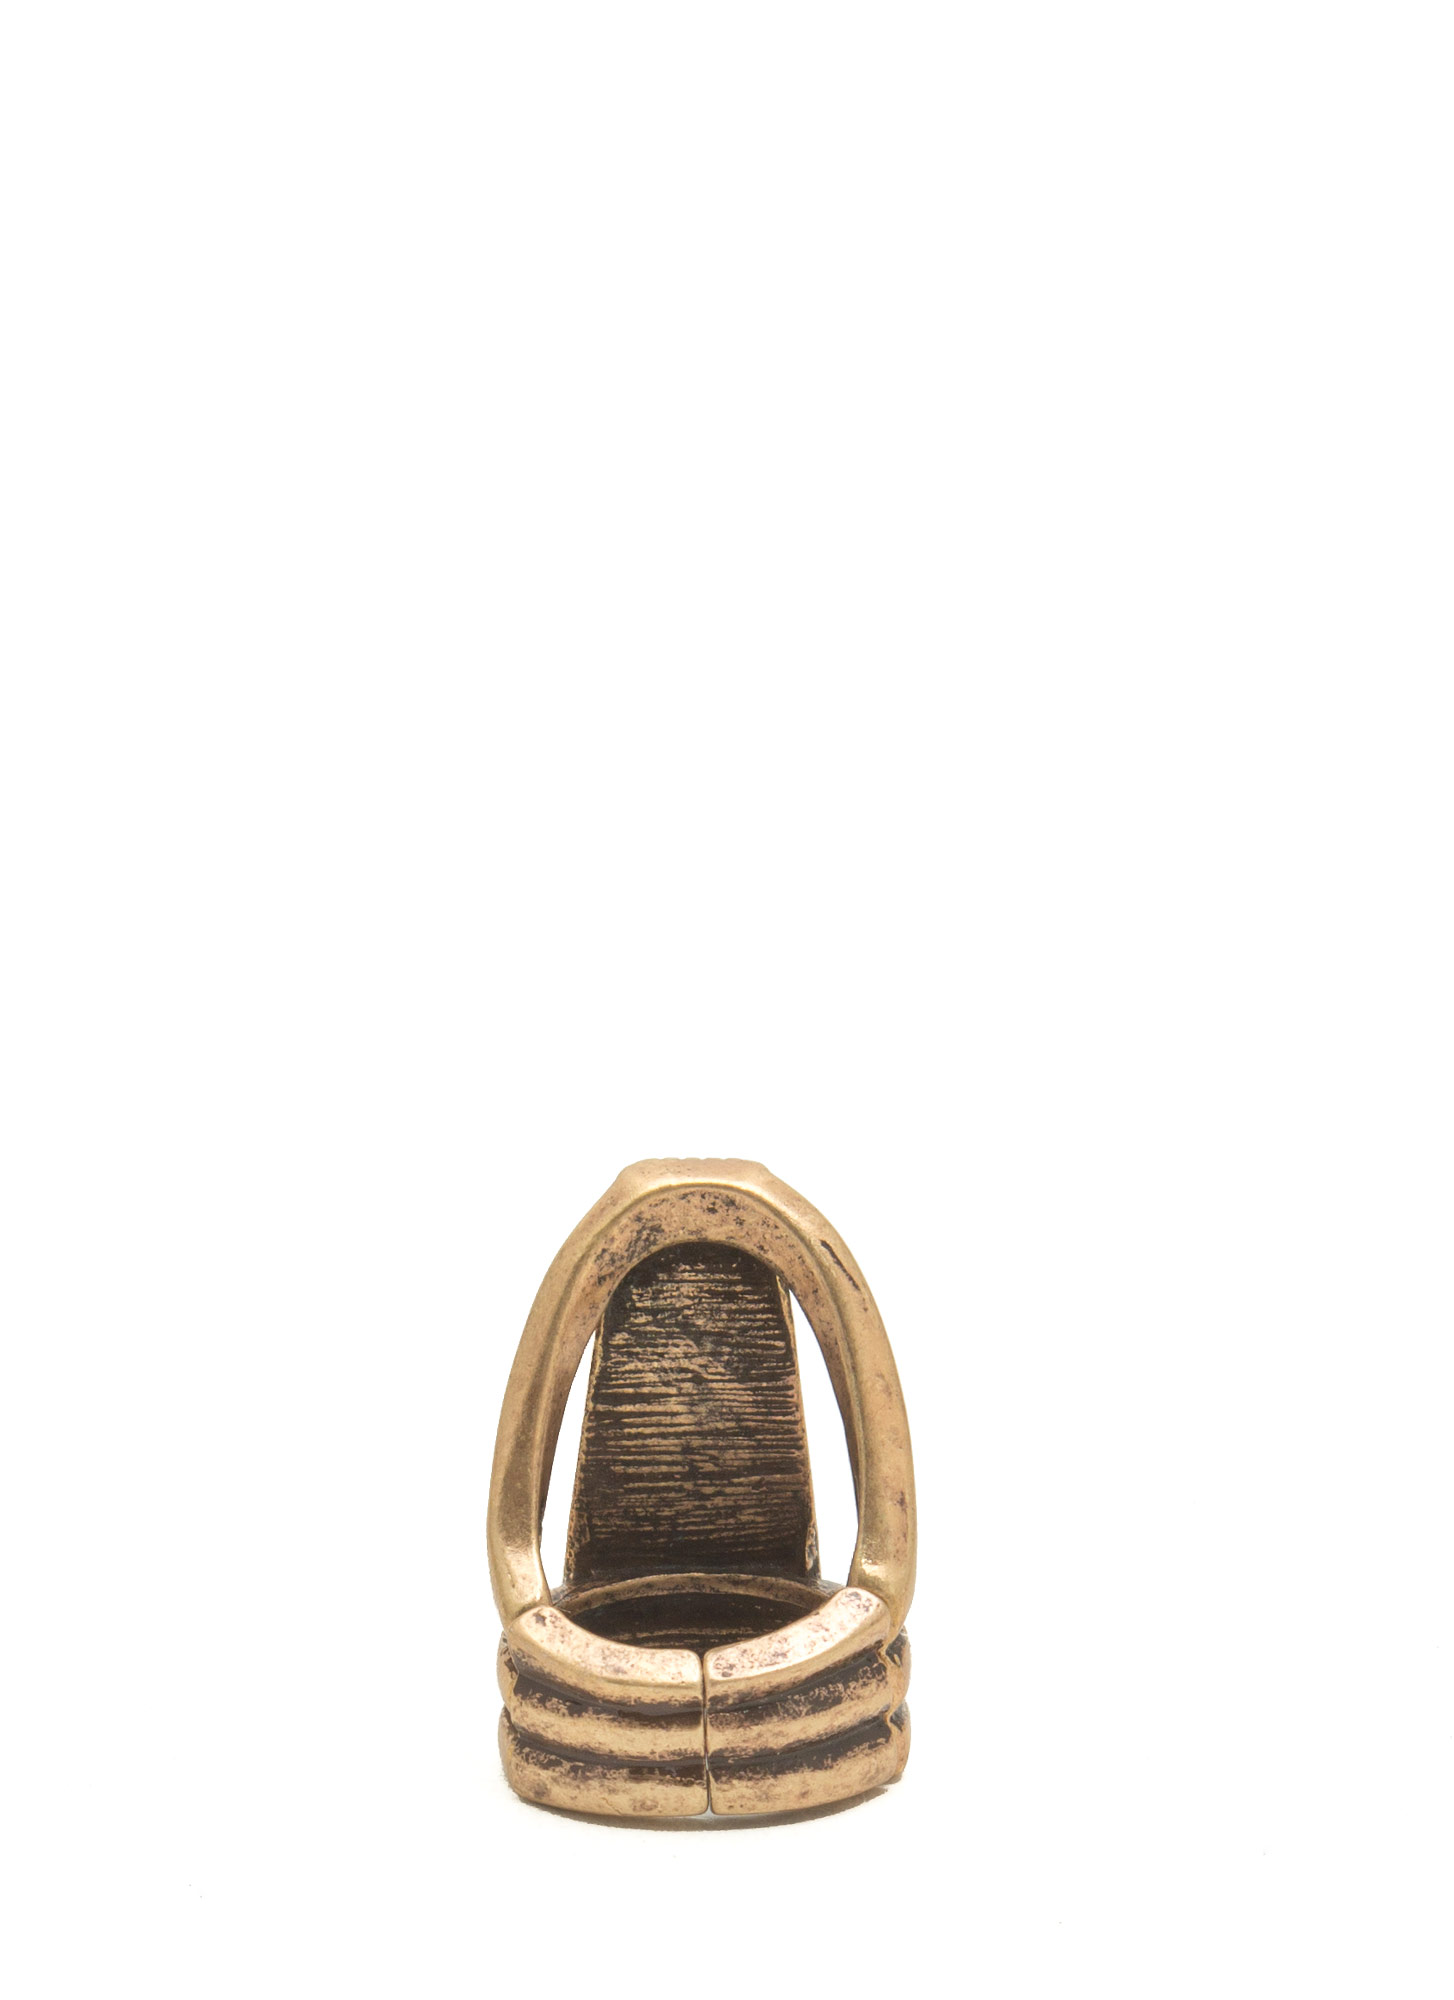 Trapezoid Stone Ring TURQGOLD